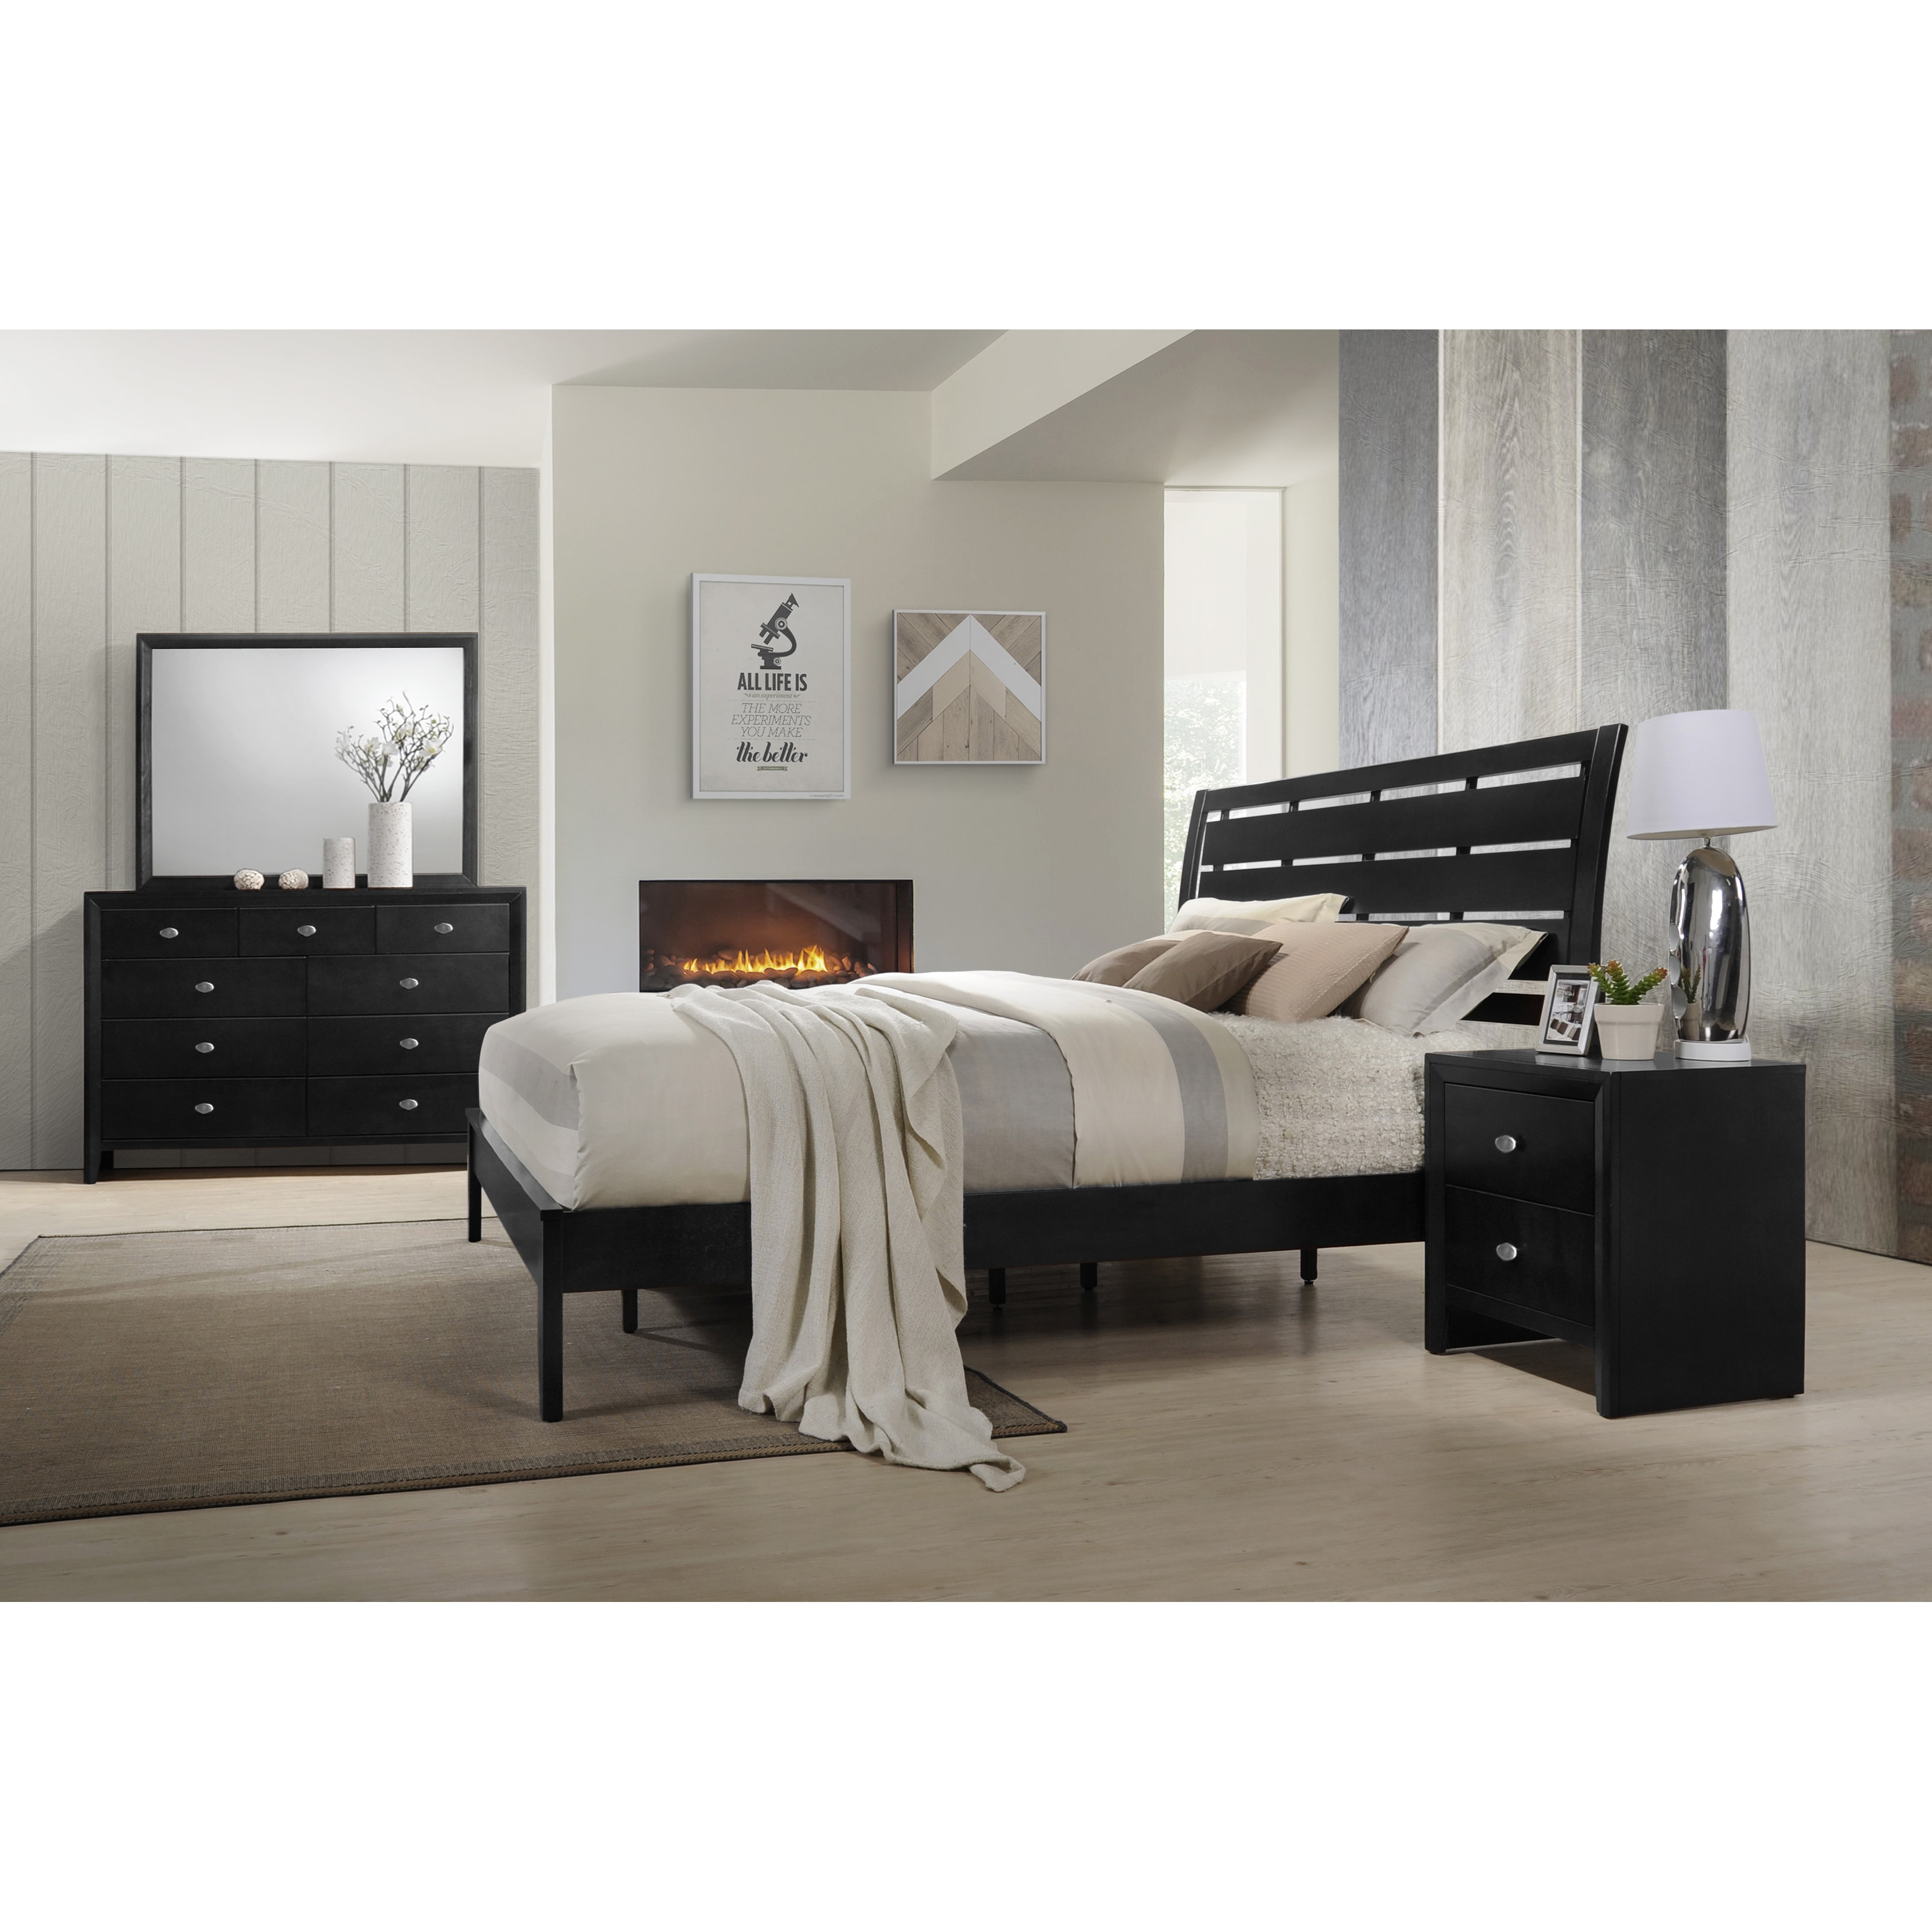 Roundhill Furniture Gloria 350 Black Finish Wood Bed Room Set, Queen Bed, Dresser, Mirror, Night Stand